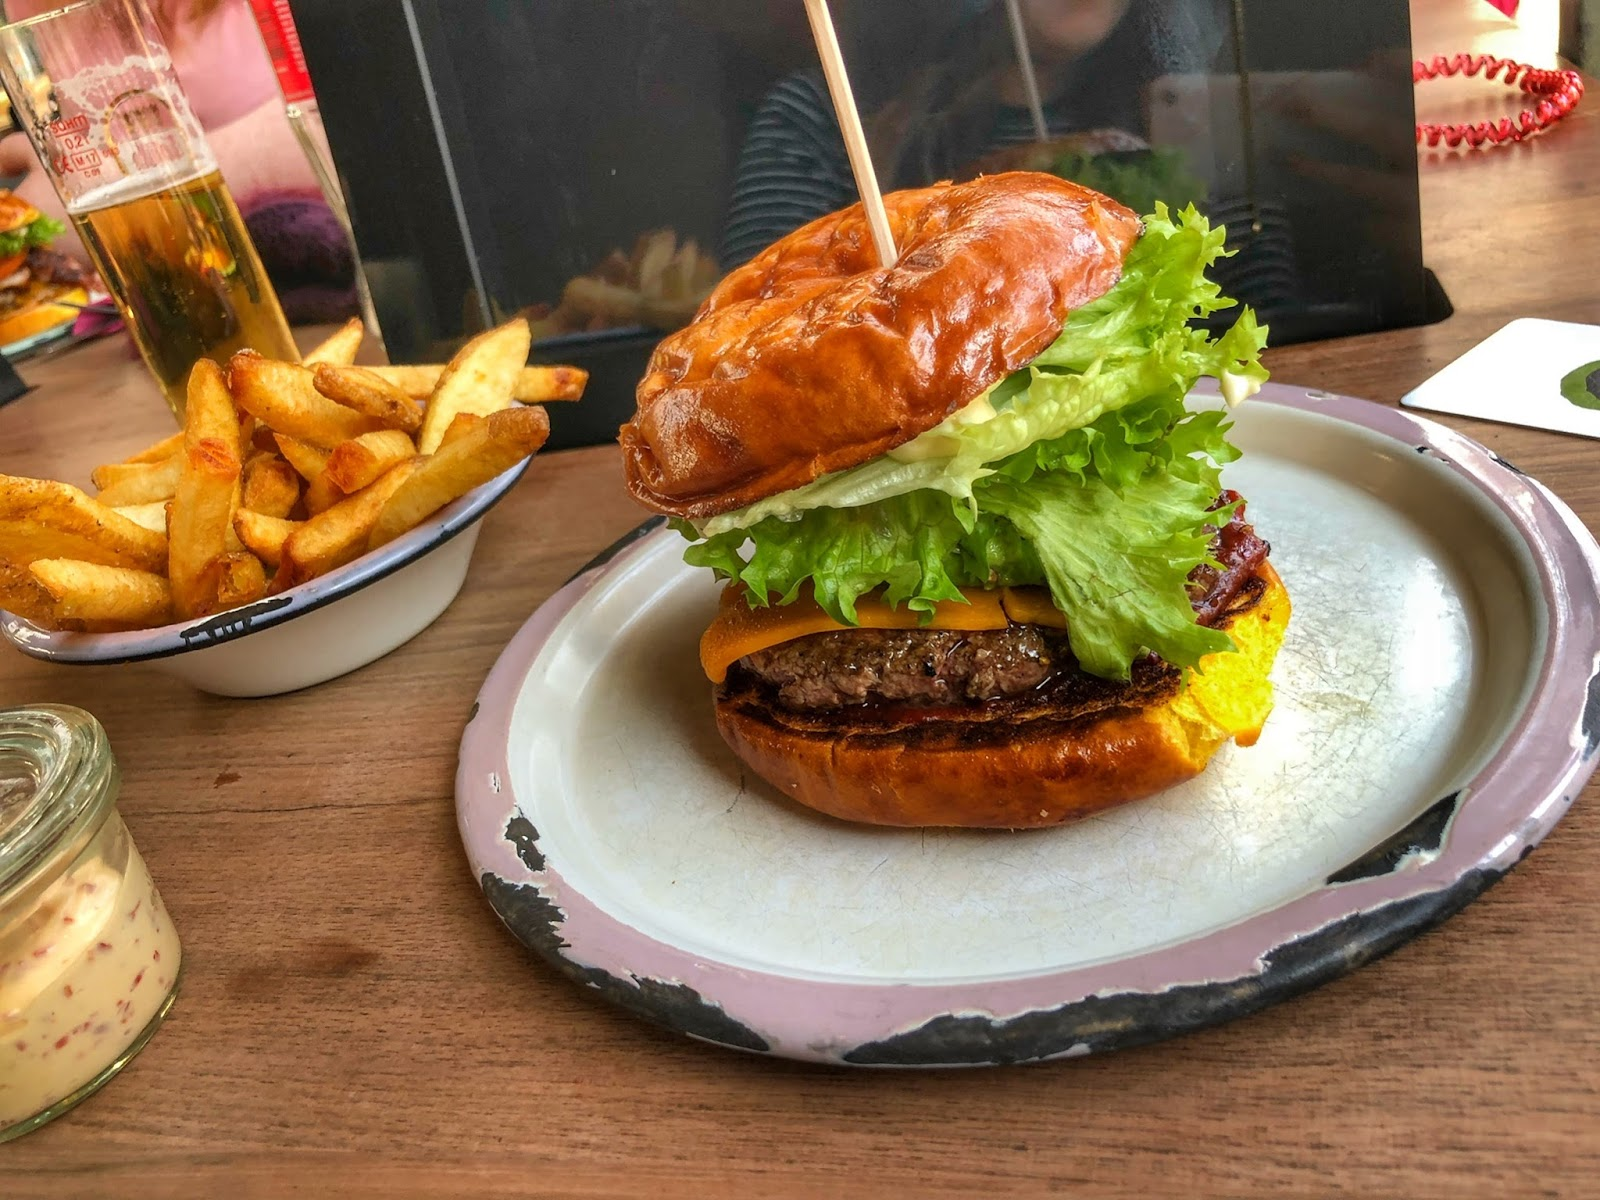 Finding a good burger in Cologne, Germany